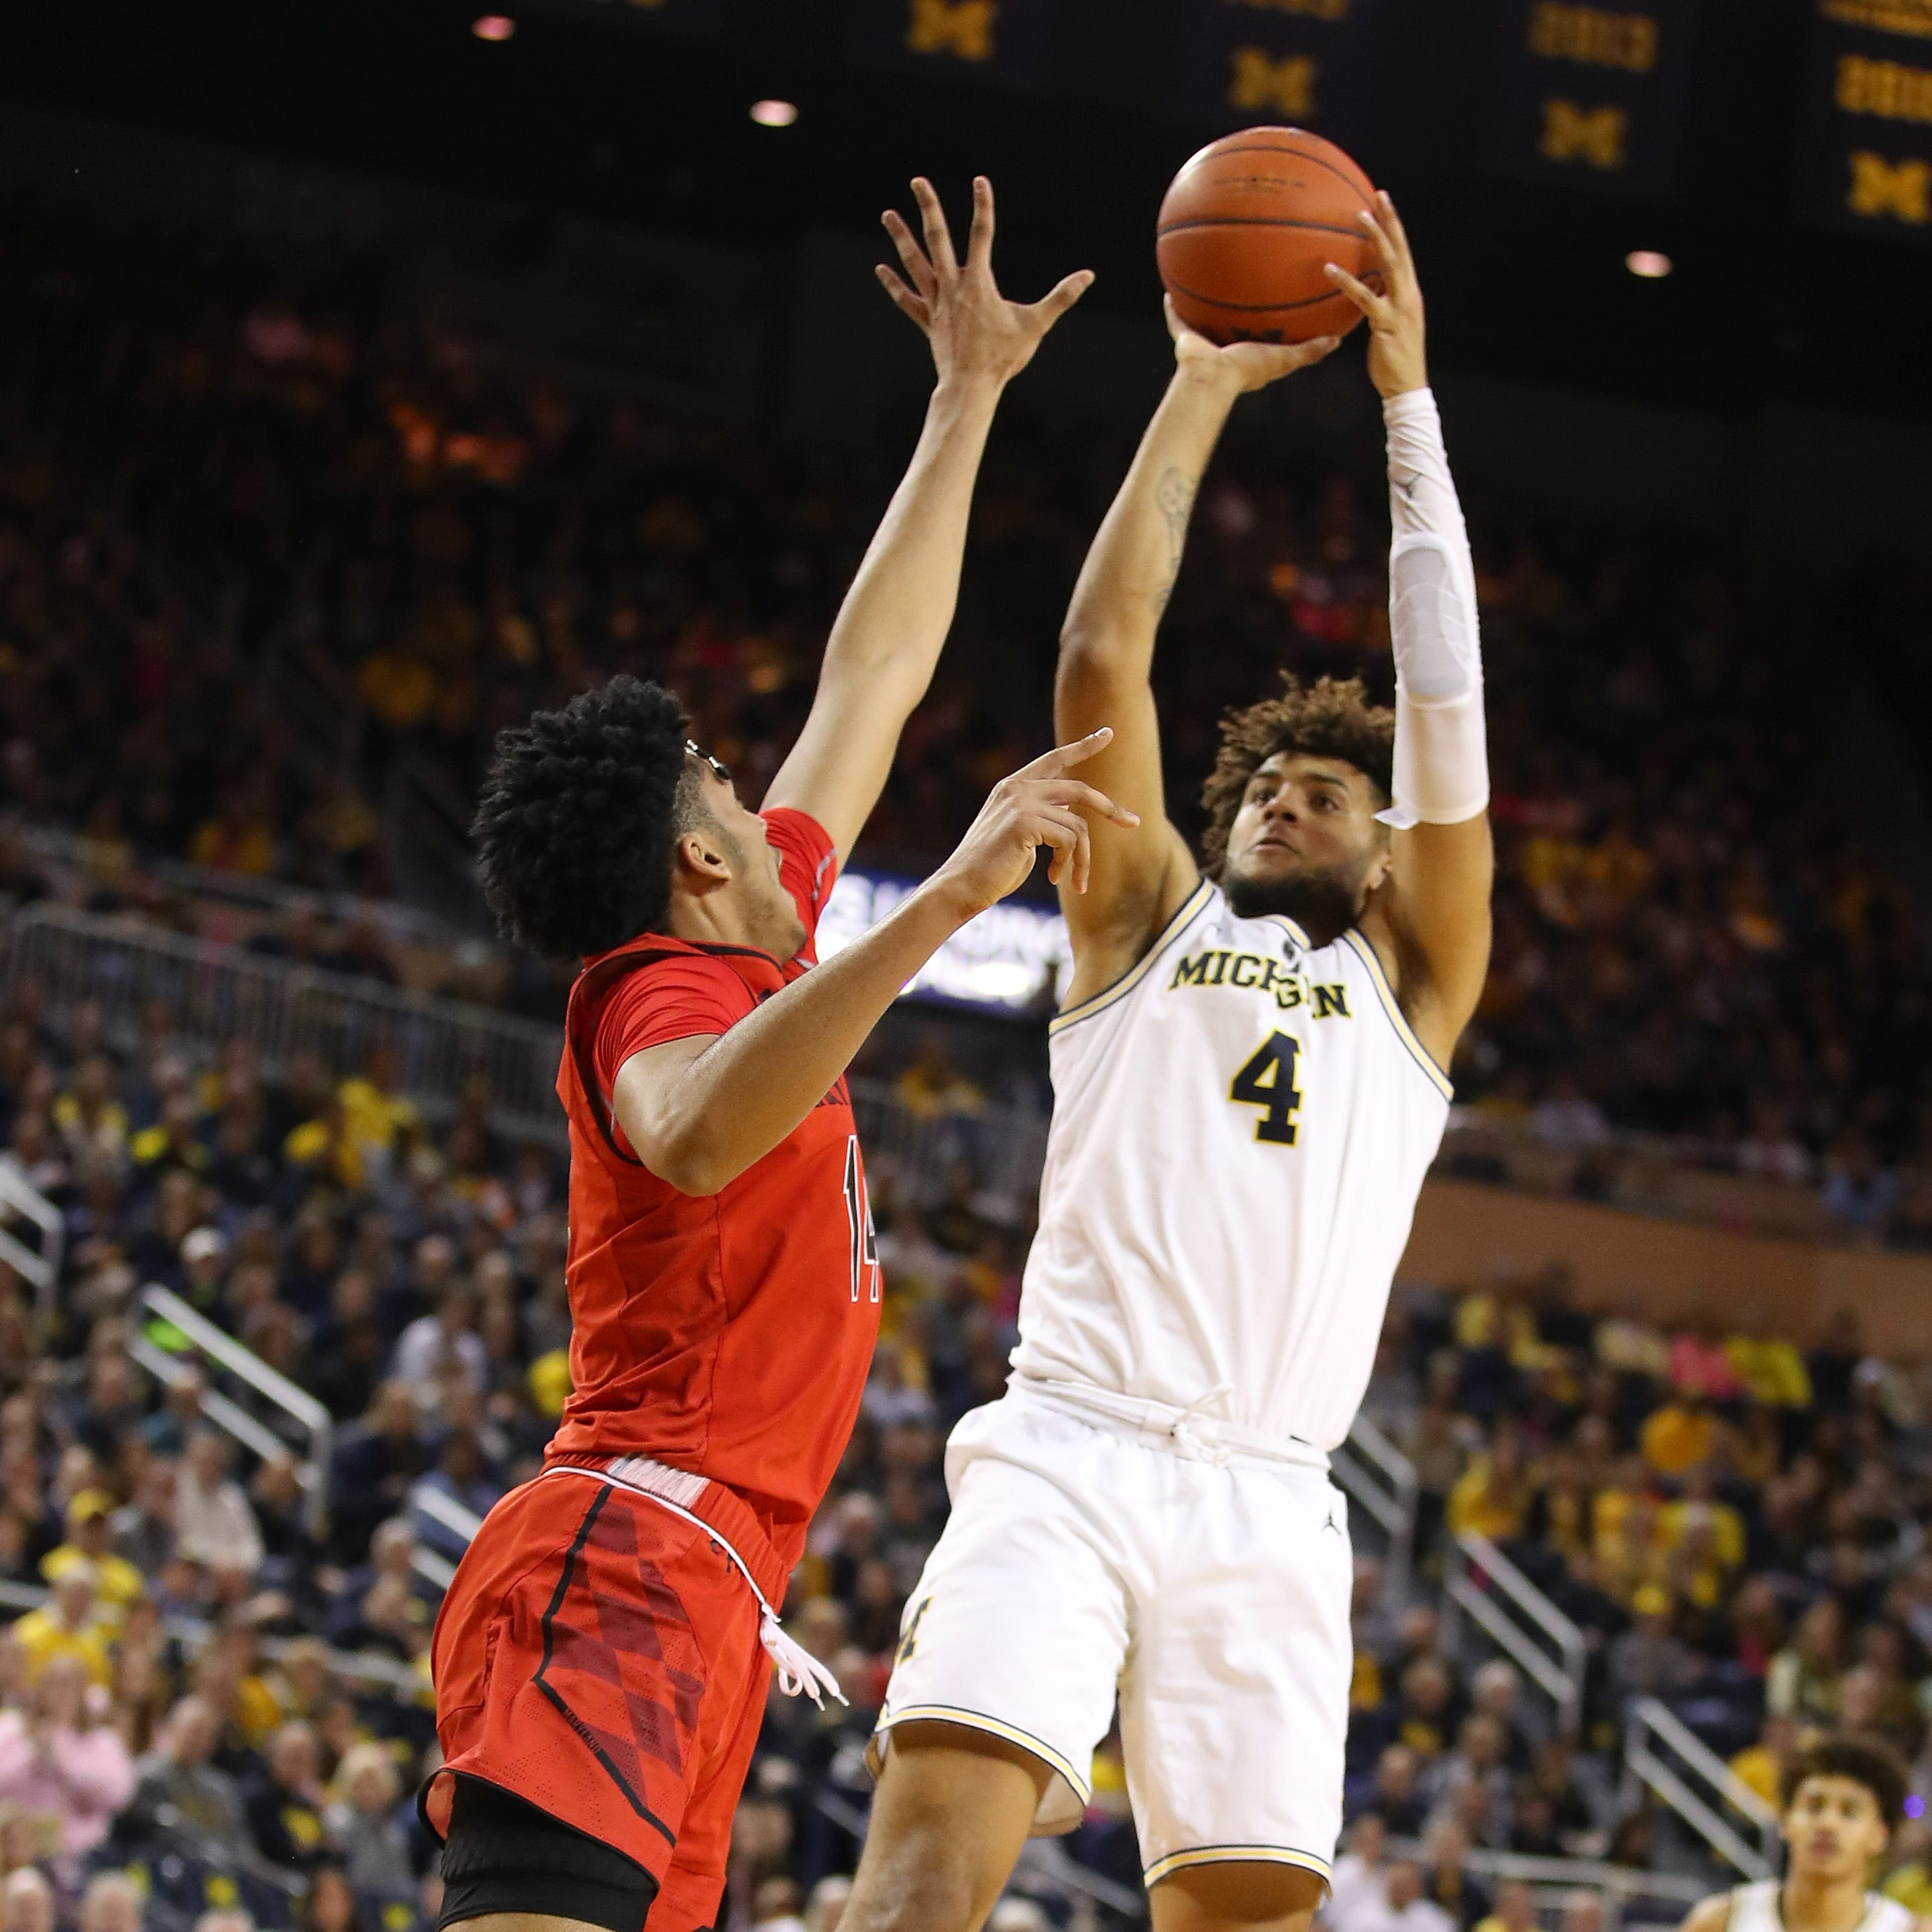 Michigan basketball: Isaiah Livers does everything; can he do more?